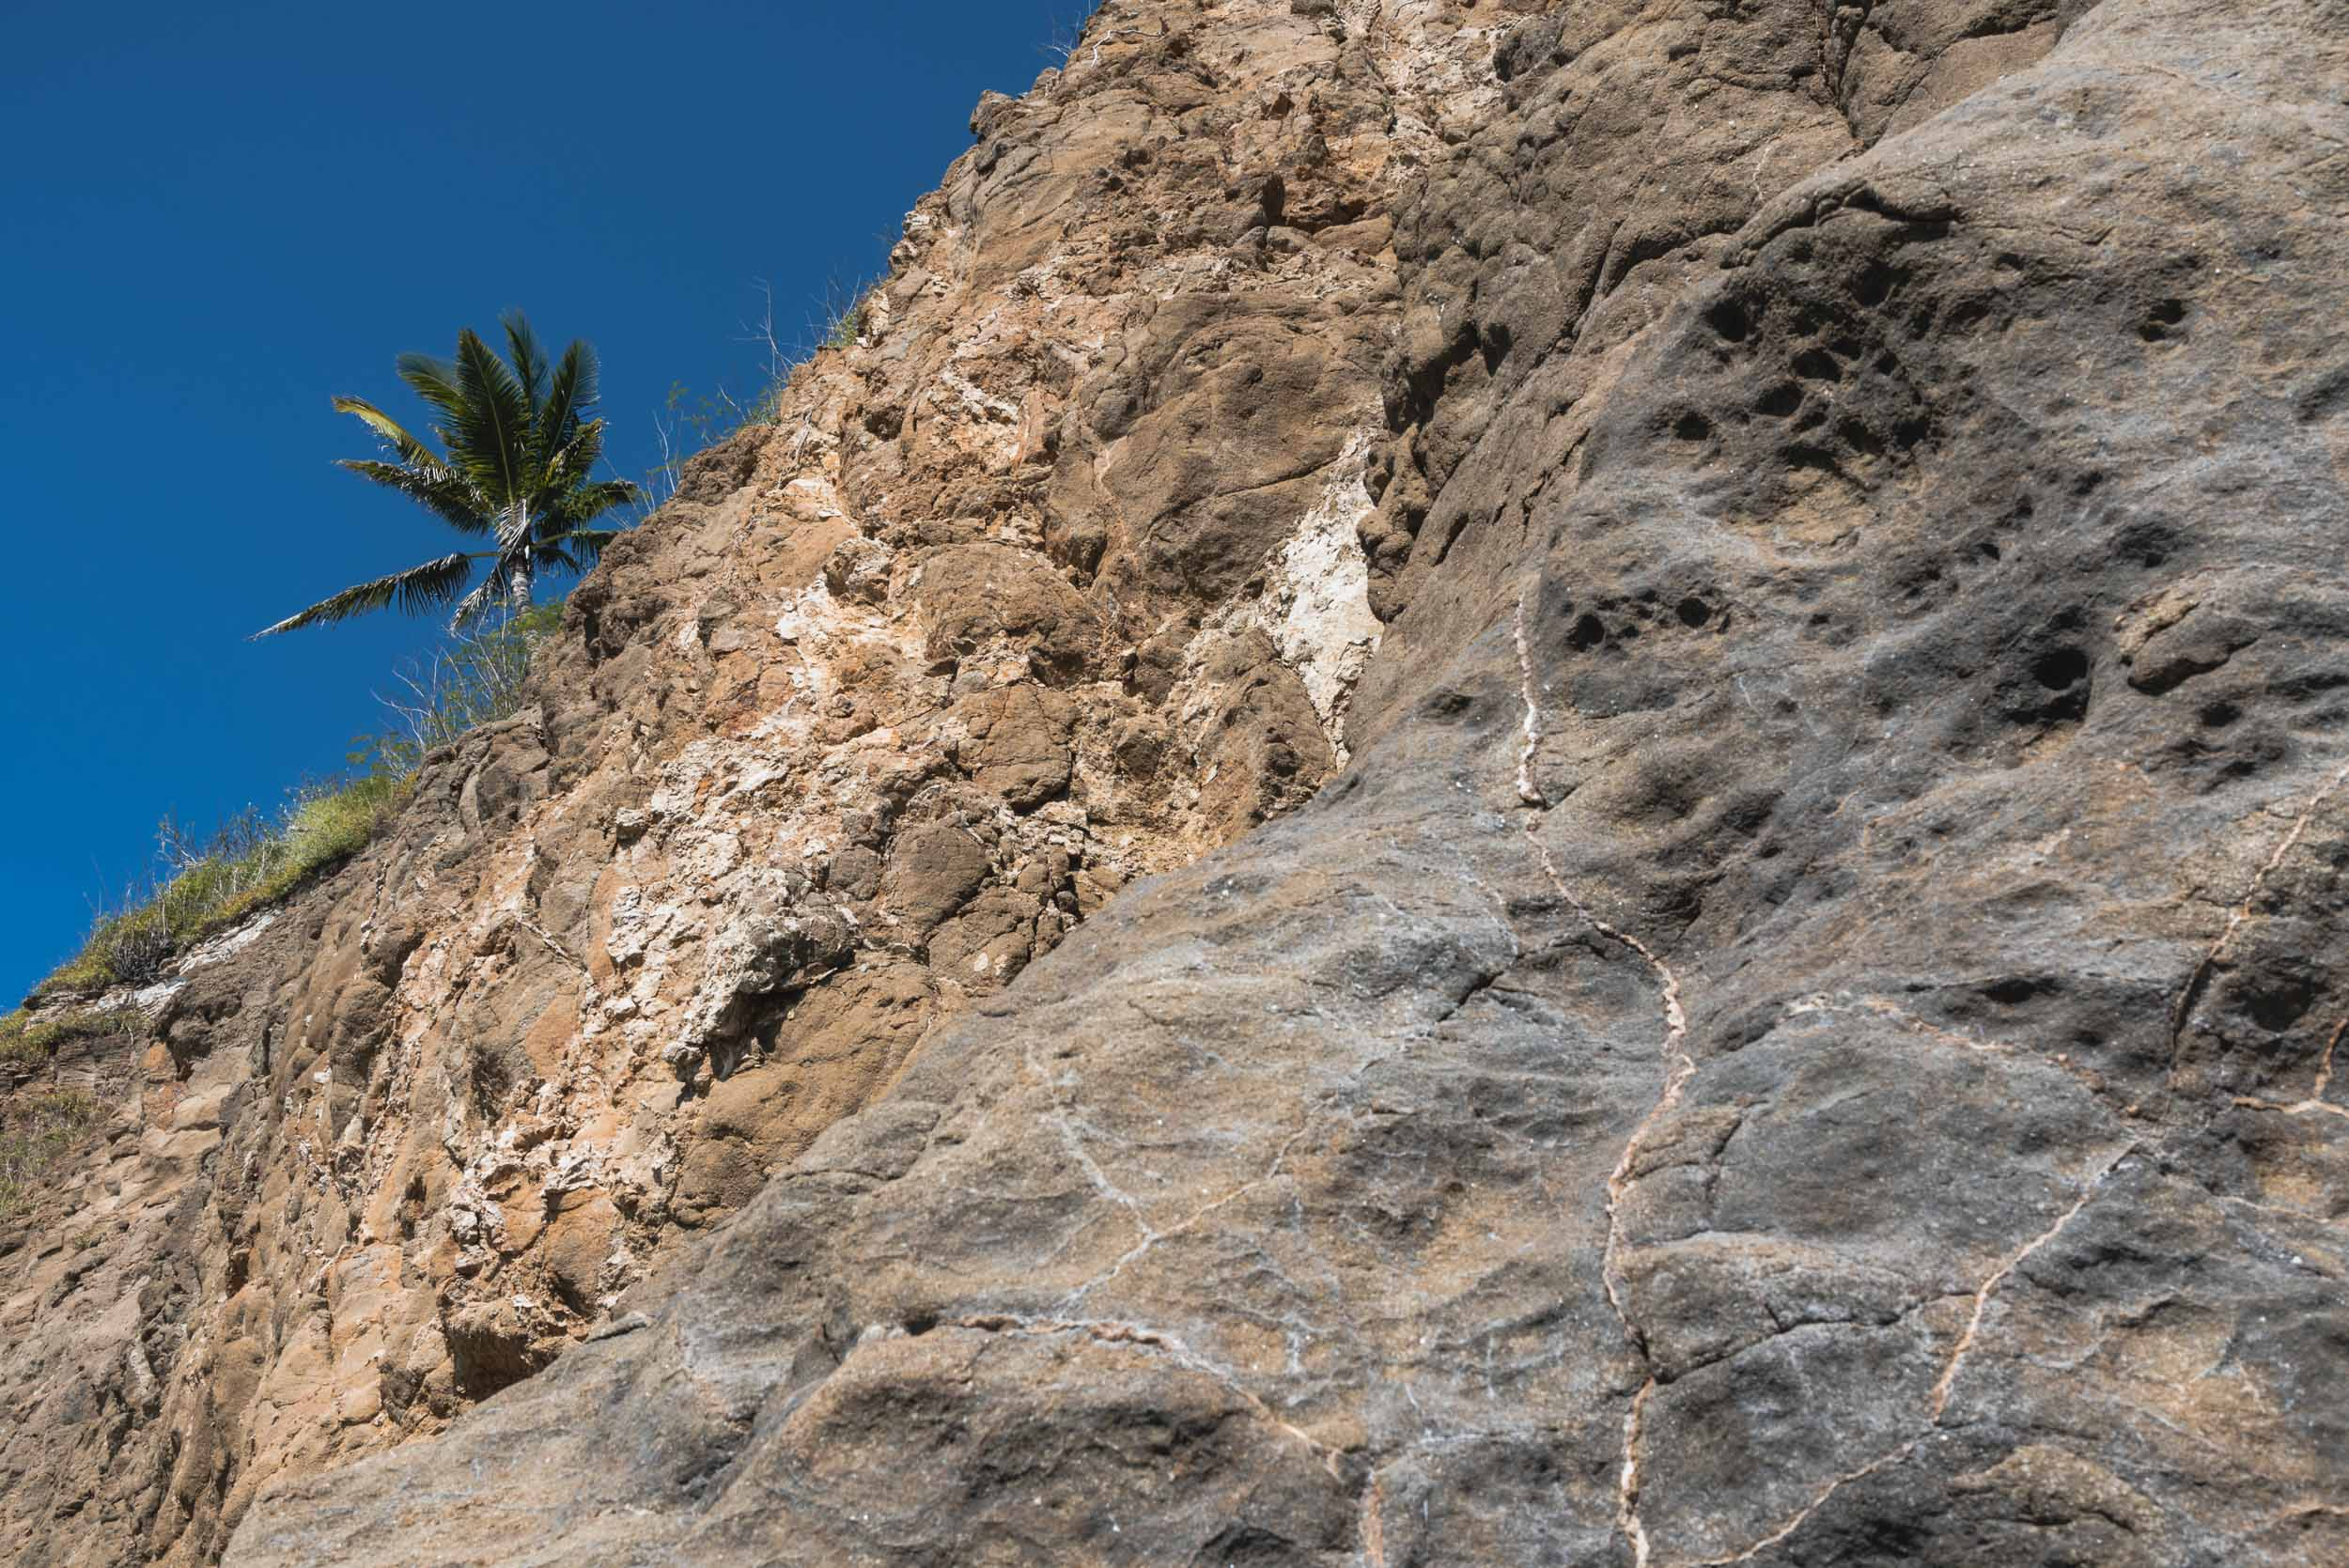 Riviera Nayarit cliff with palm tree